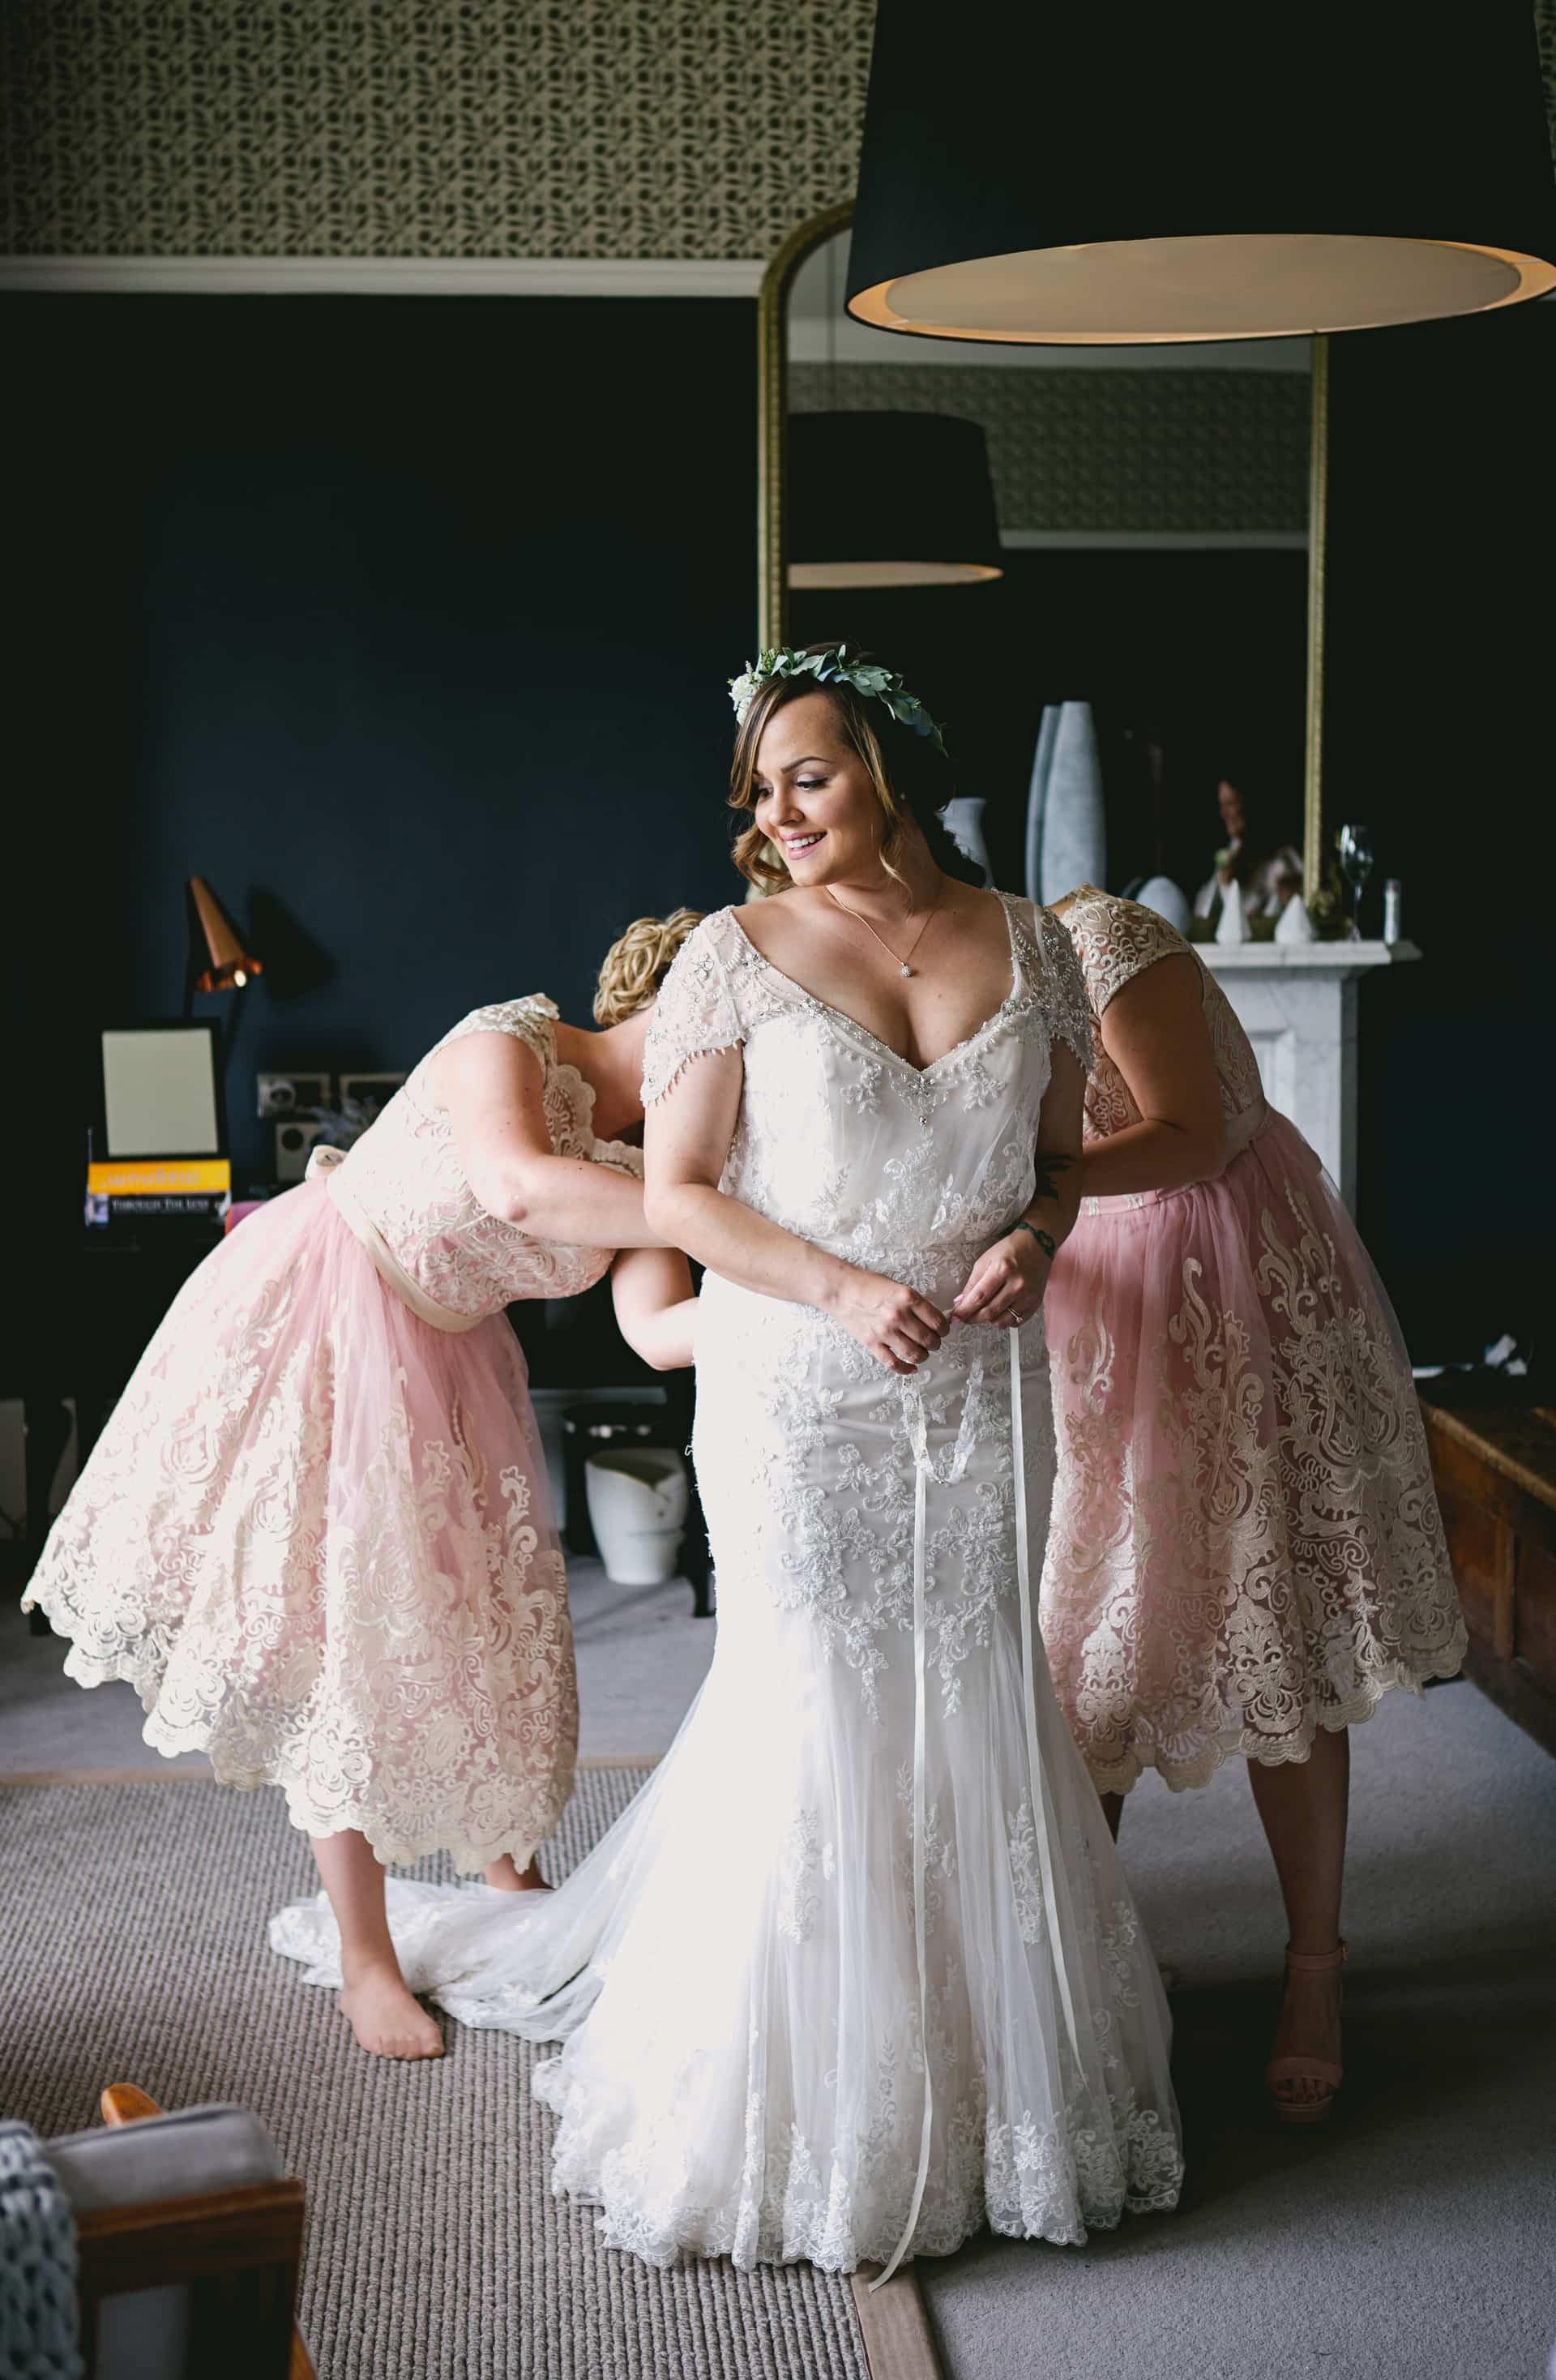 Hampton Manor Wedding photography; Bride getting ready